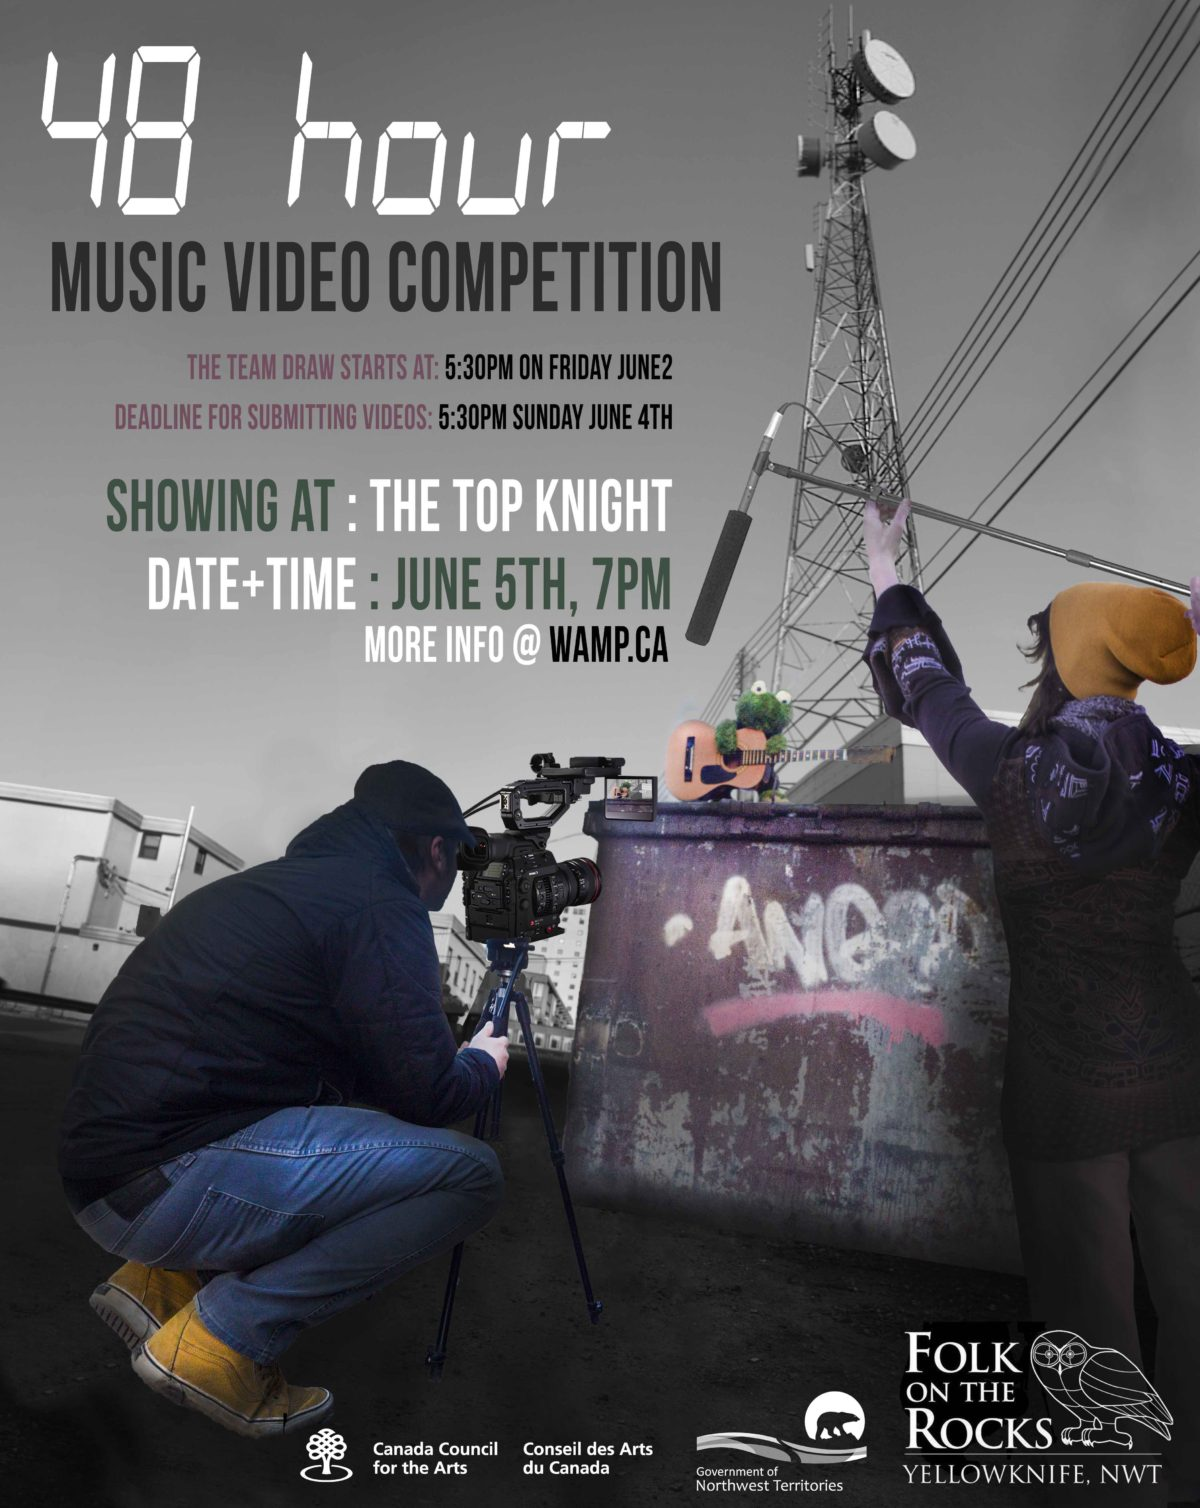 48 Hour Music Video Competition